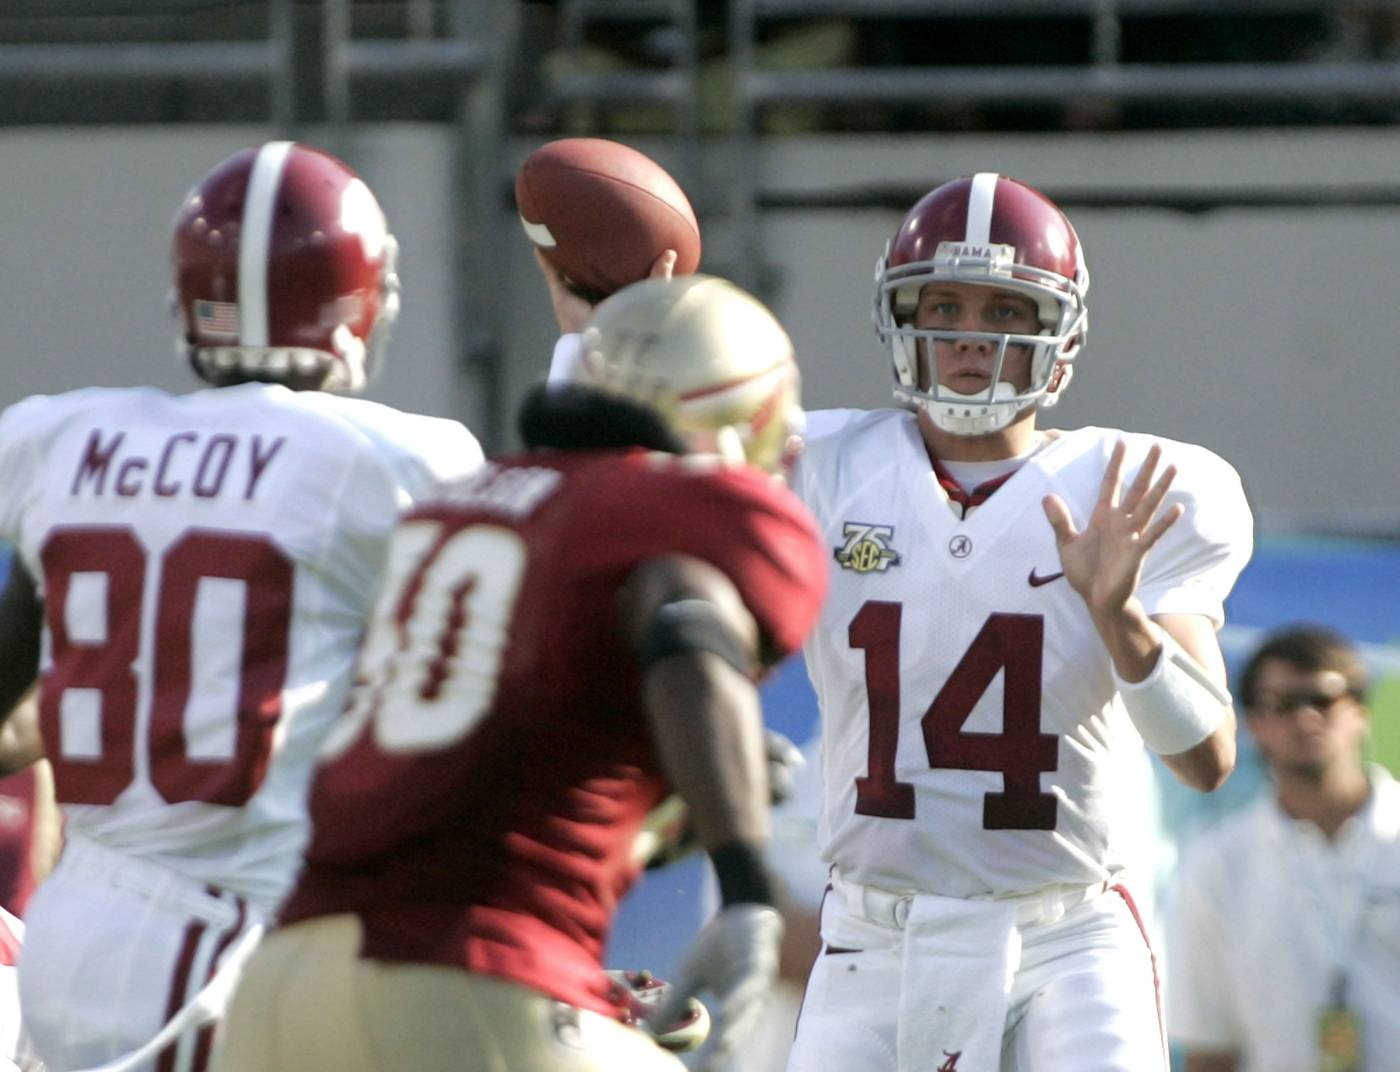 Alabama quarterback John Parker Wailson, right, throws a first-quarter pass to receiver Mike McCoy, left, as Florida State's Derek Nicholson, center, moves in on the play. (AP Photo/Phil Coale)